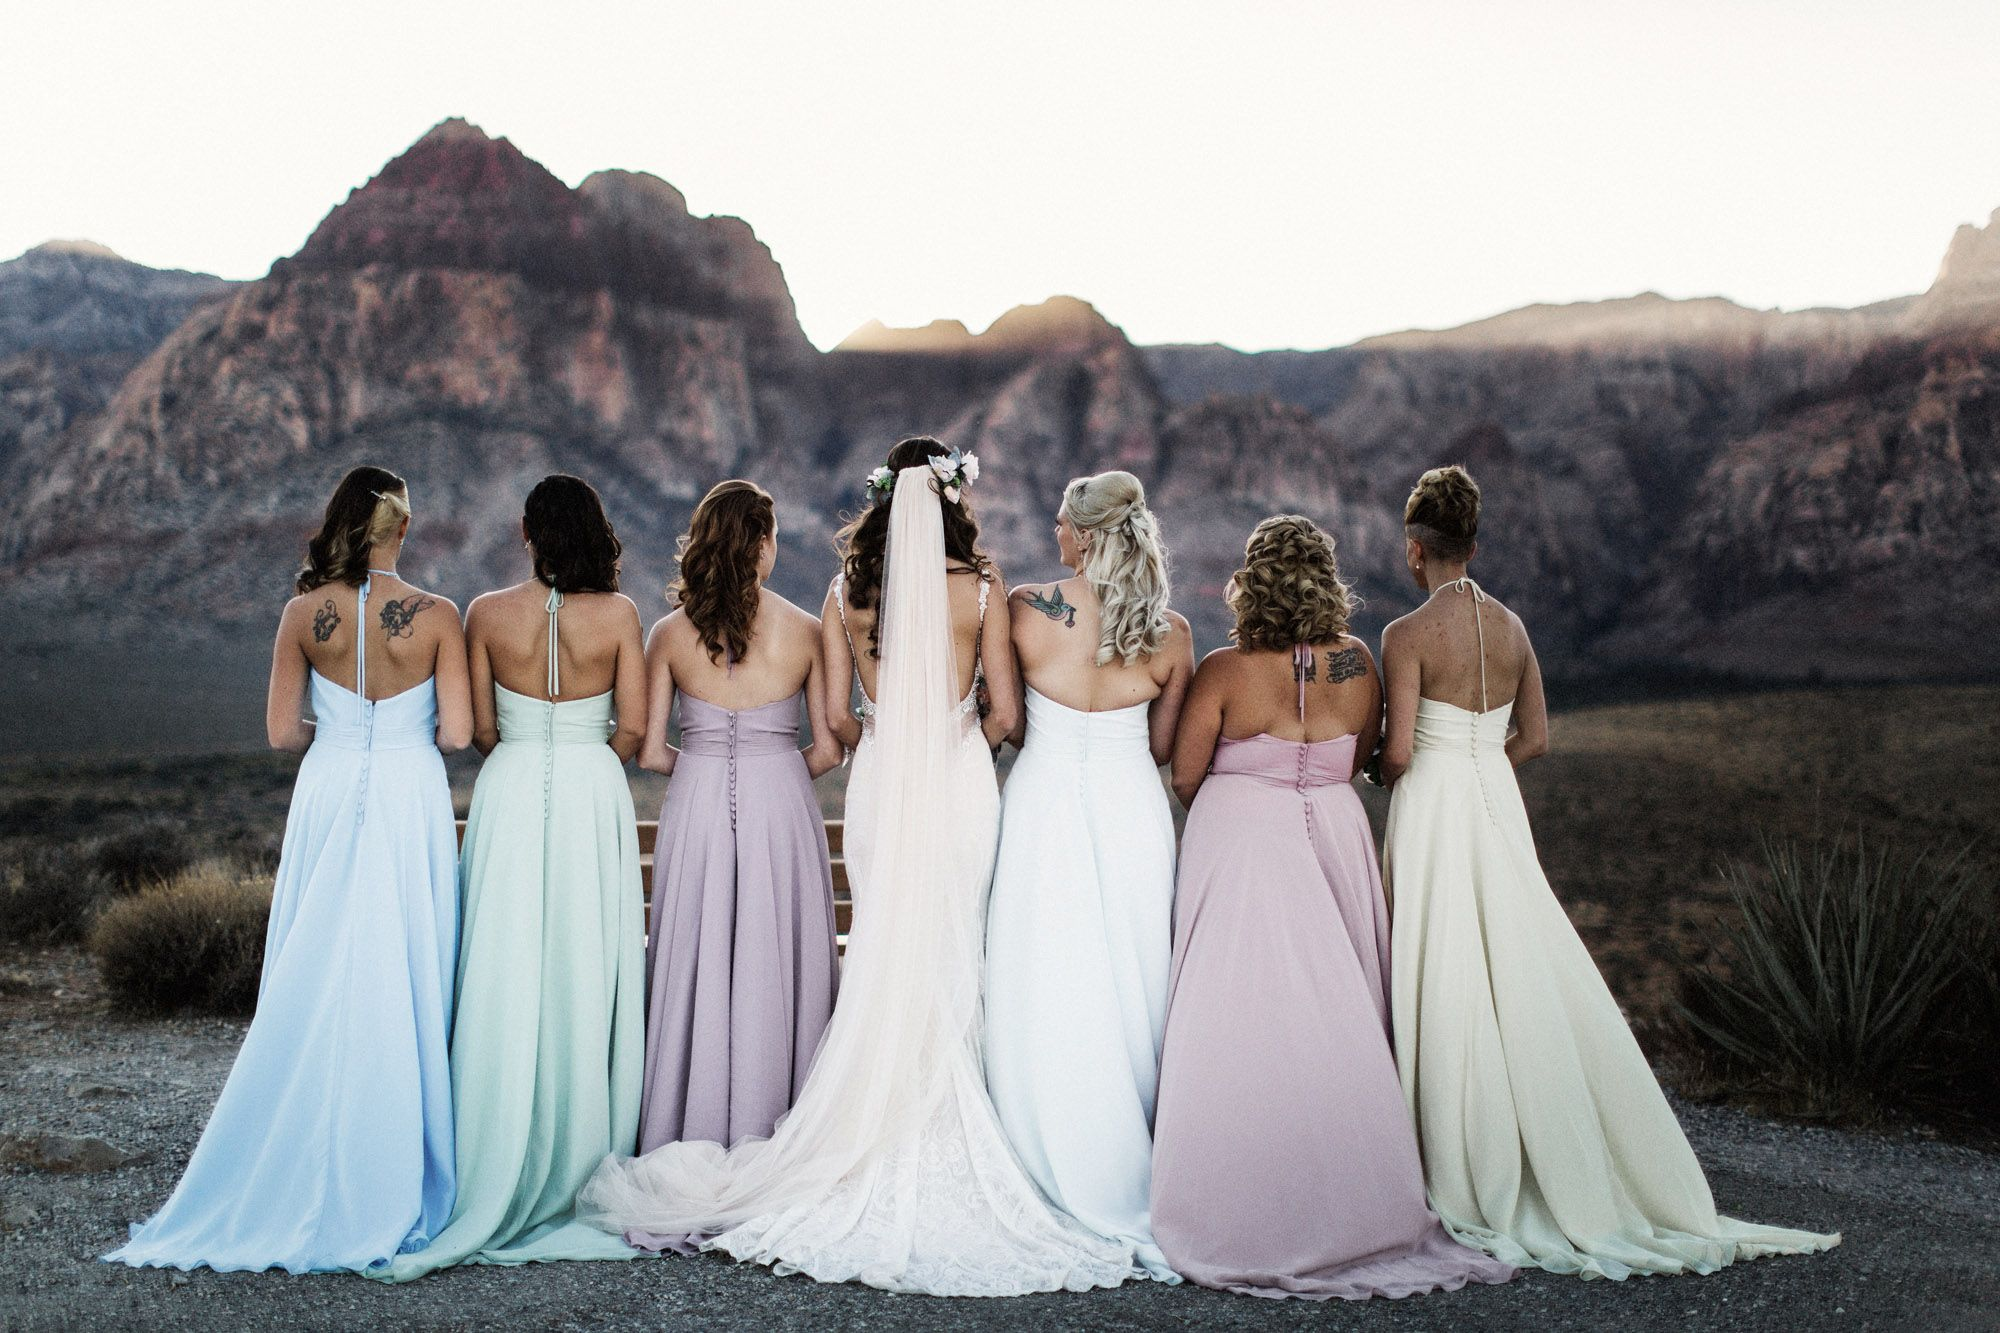 Red Rock Canyon Weddings Dedication Overlook Las Vegas Nevada 2016